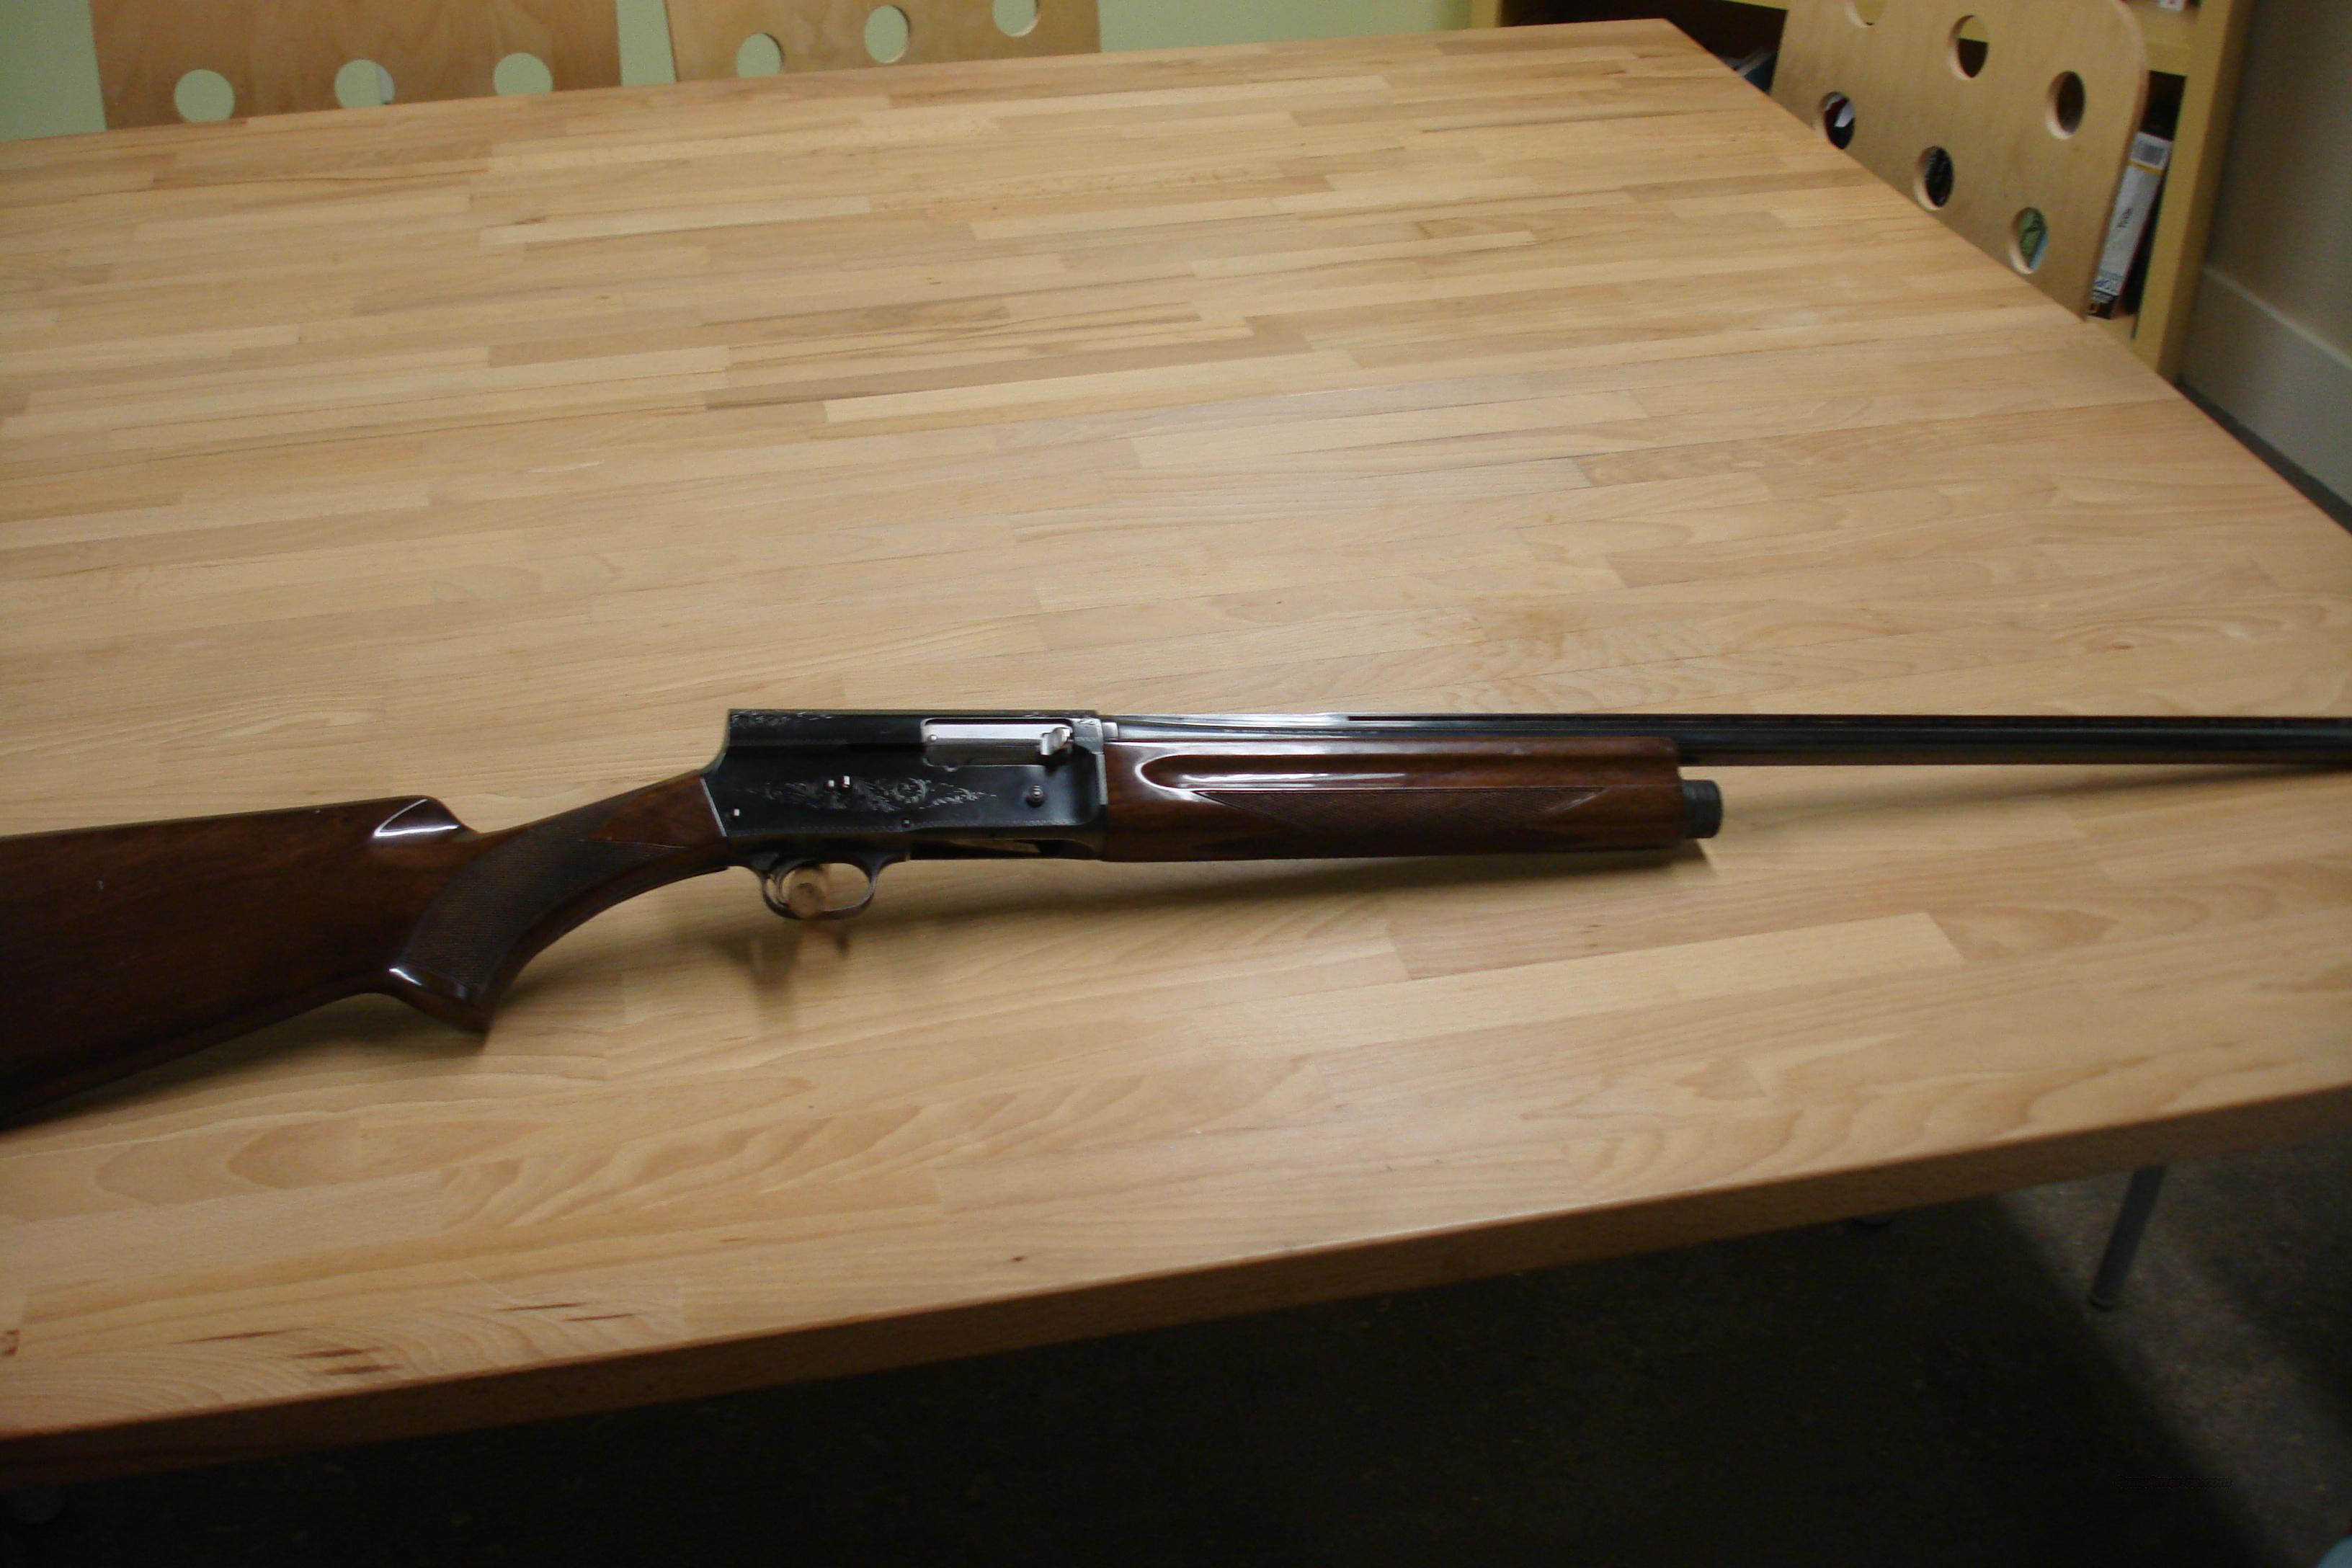 Browning Auto 5 20 gauge  Guns > Shotguns > Browning Shotguns > Autoloaders > Hunting